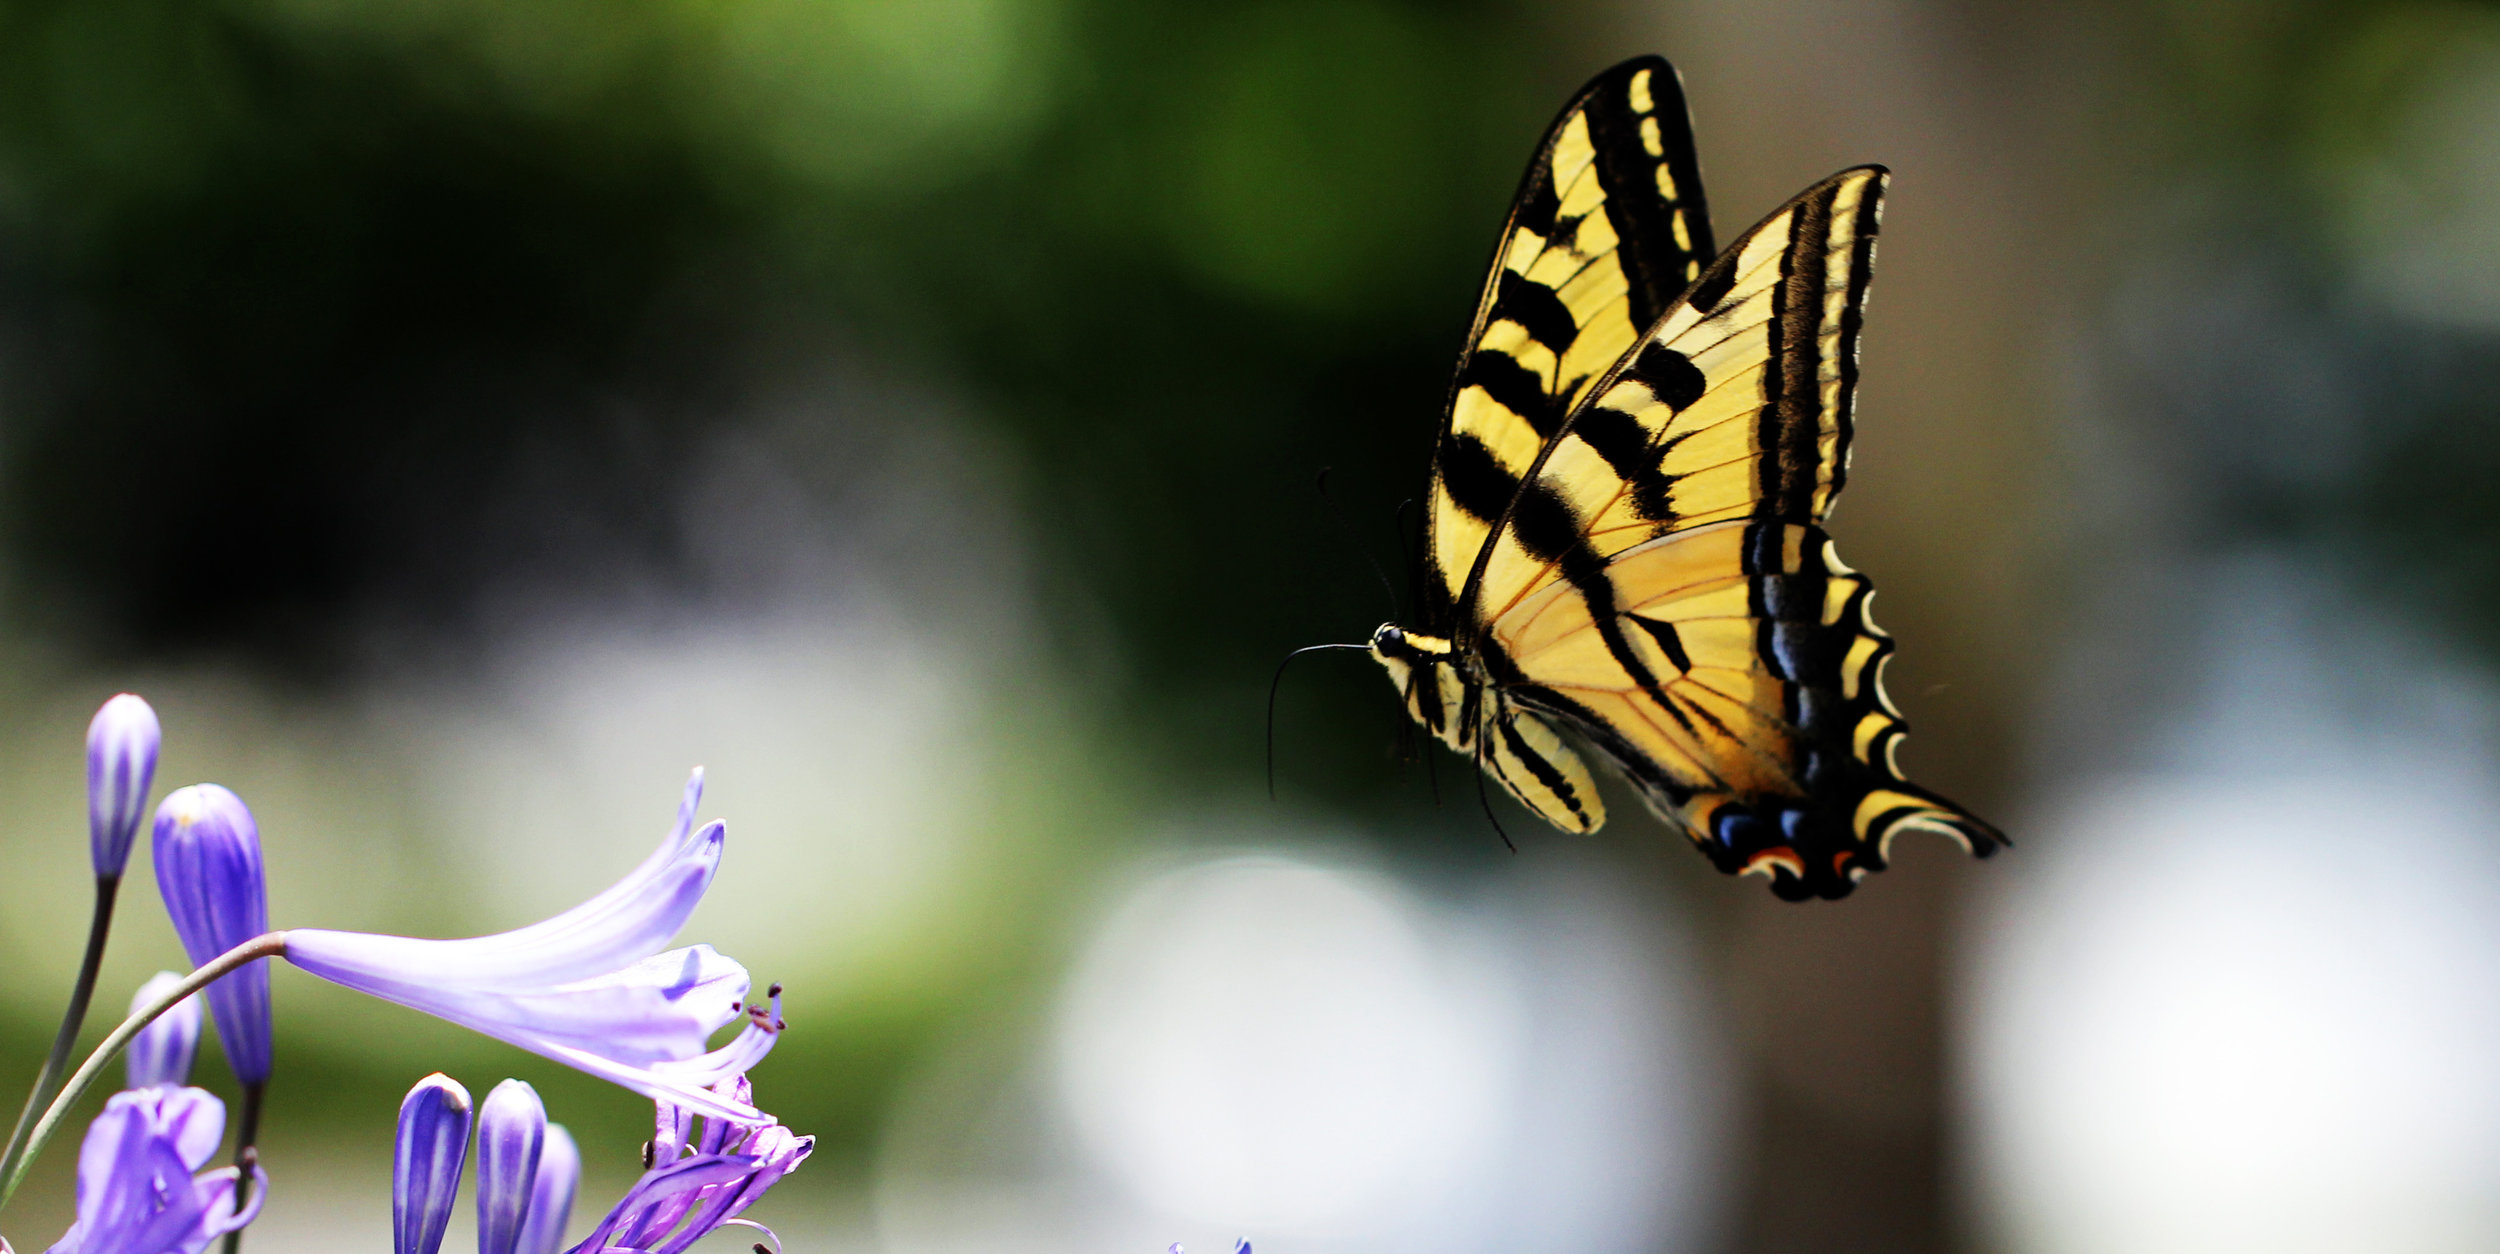 A Swallowtail out for nectar. Photo courtesy siamesepuppy @flickr